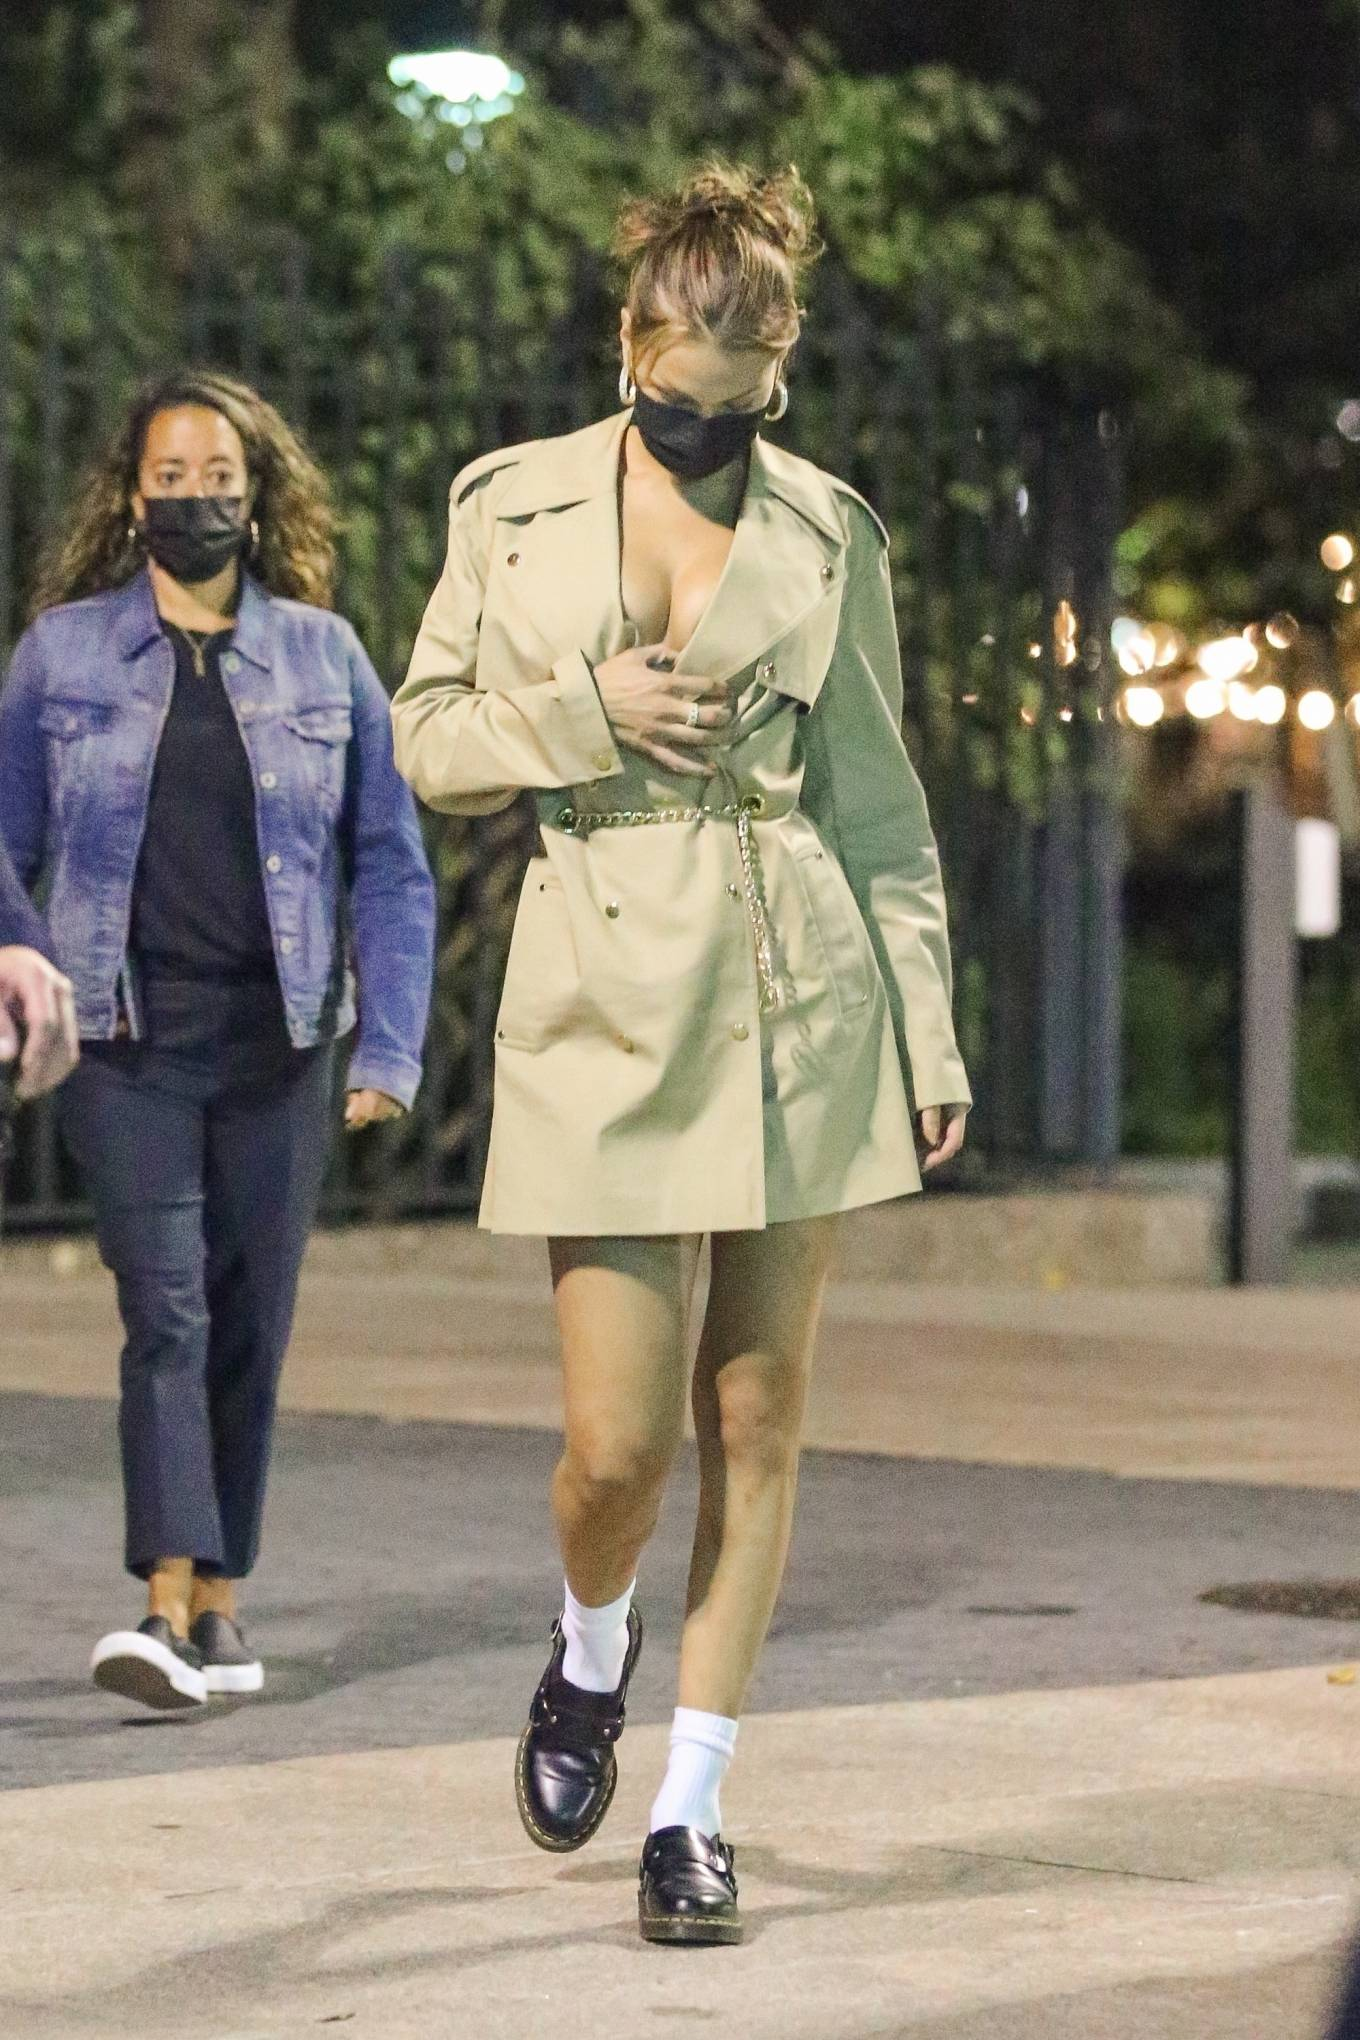 Bella Hadid 2020 : Bella Hadid – Looks chic while out in New York-26